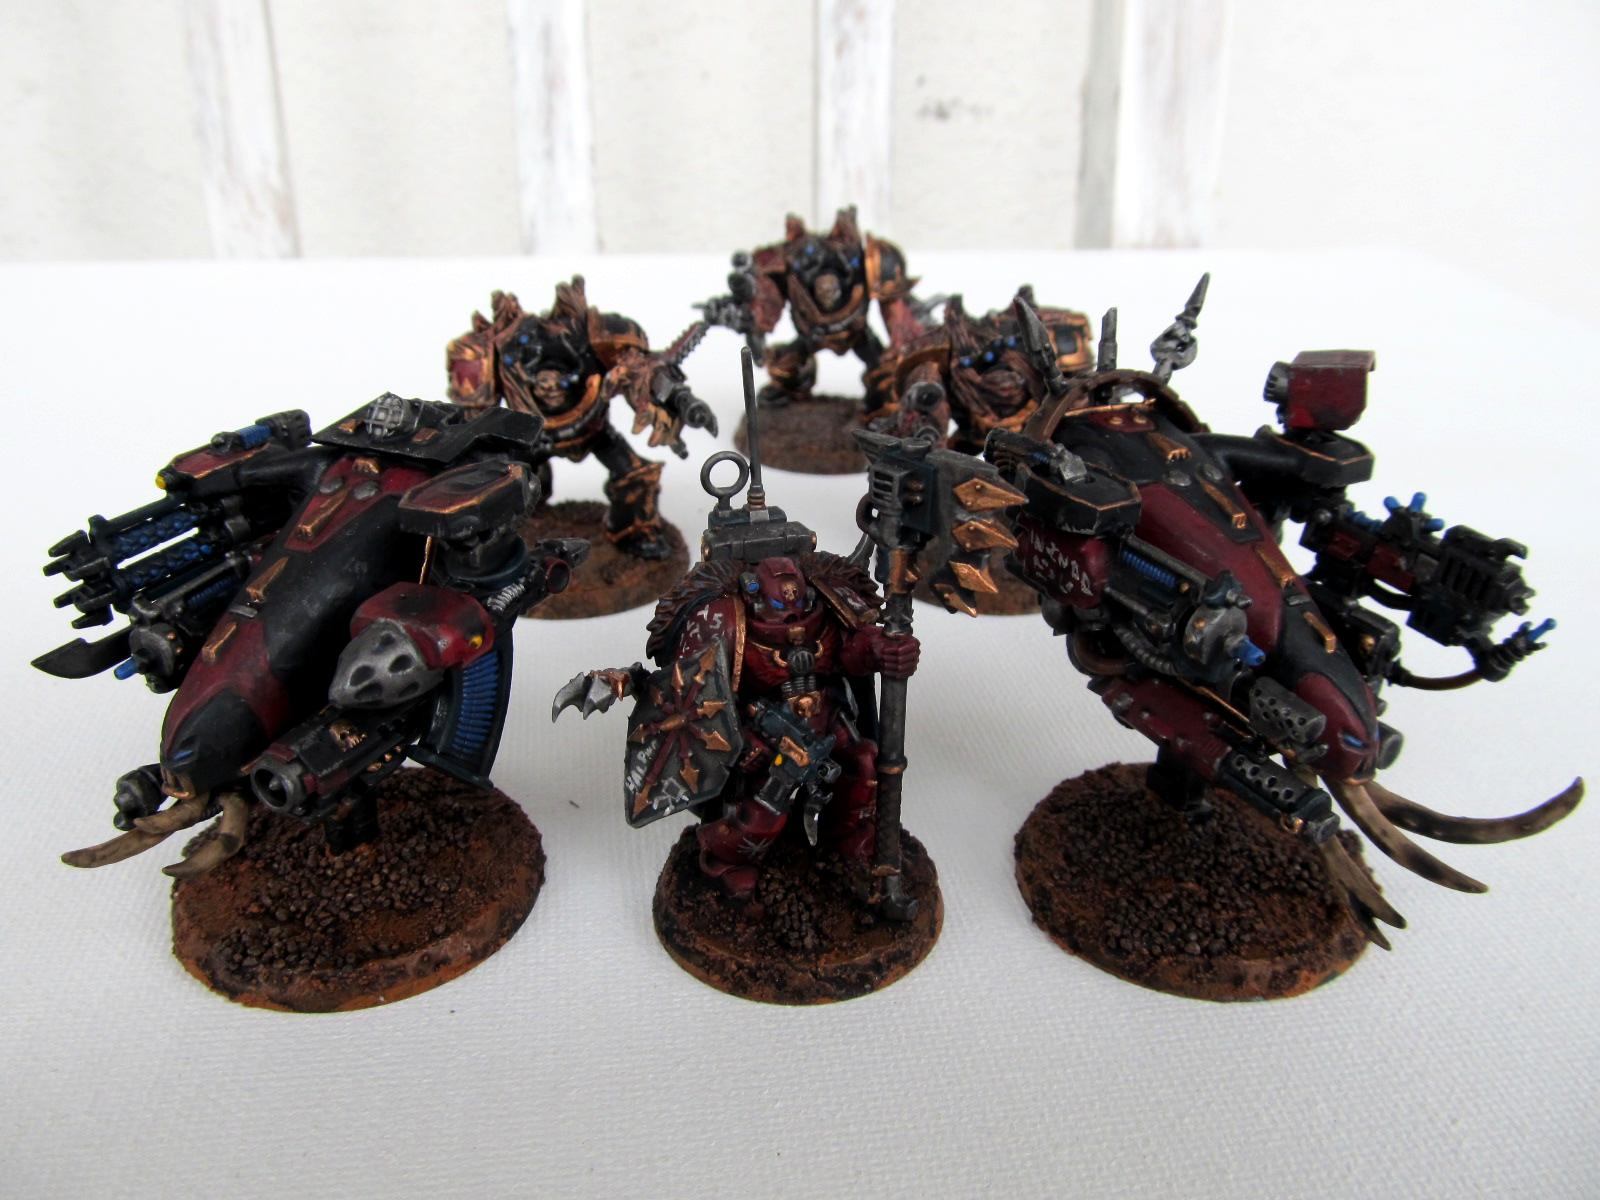 Chaos, Chaos Space Marines, Drone, Heretix, Obliterators, Sons Of Halphas, Warhammer 40,000, Warpsmith